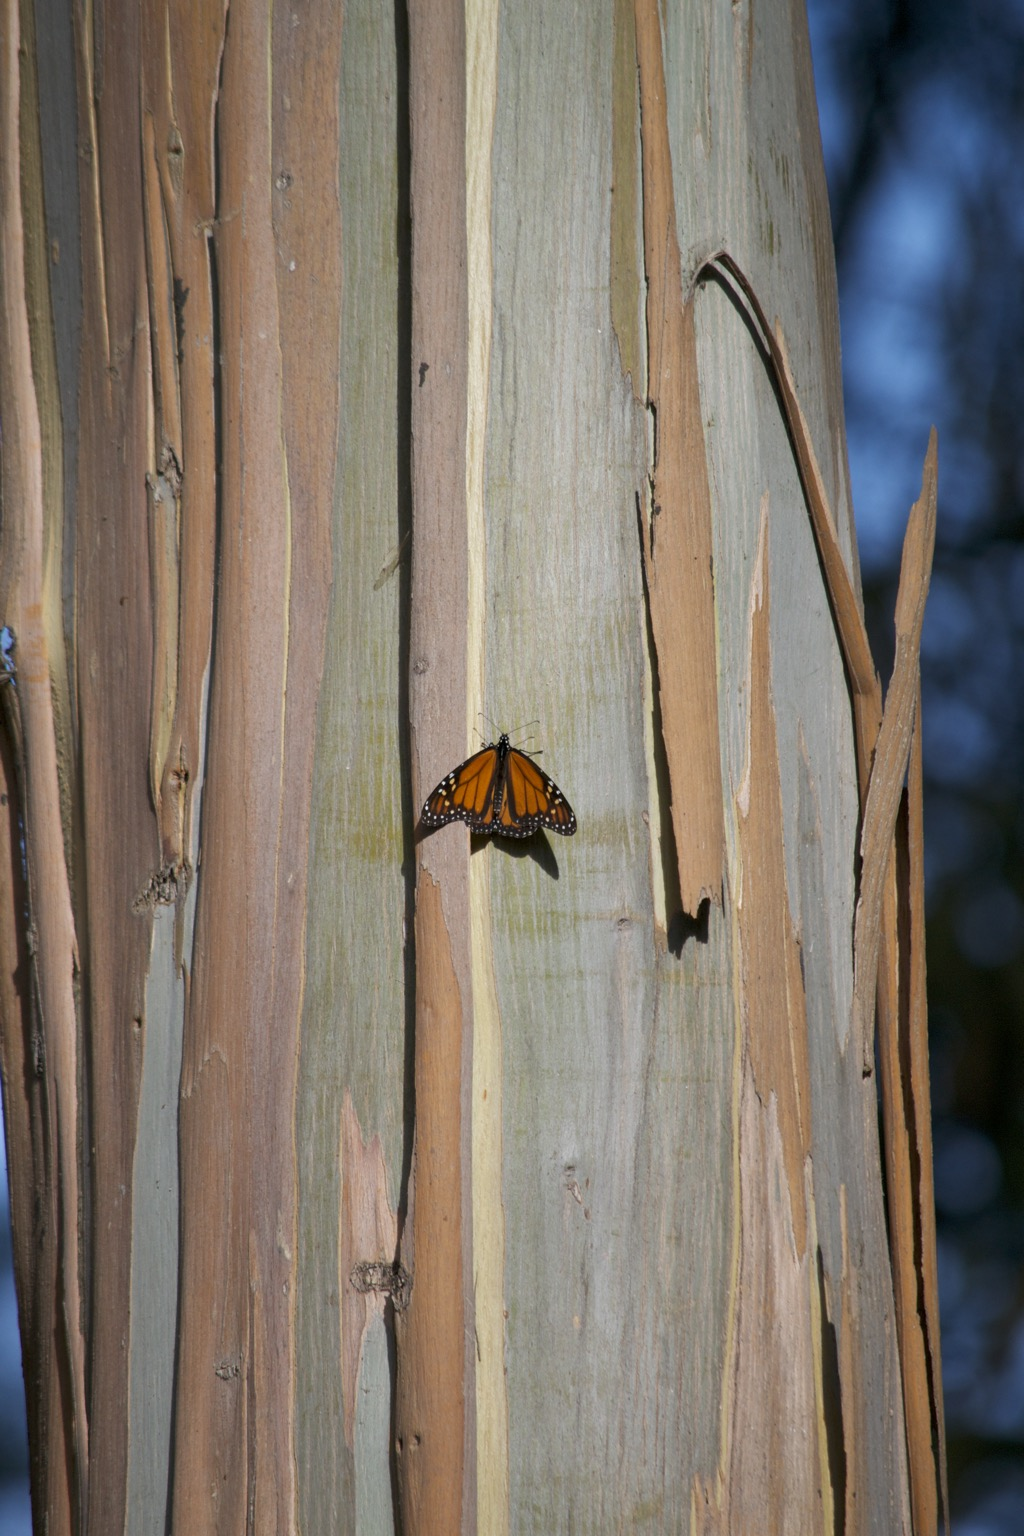 Monarch on trunk.